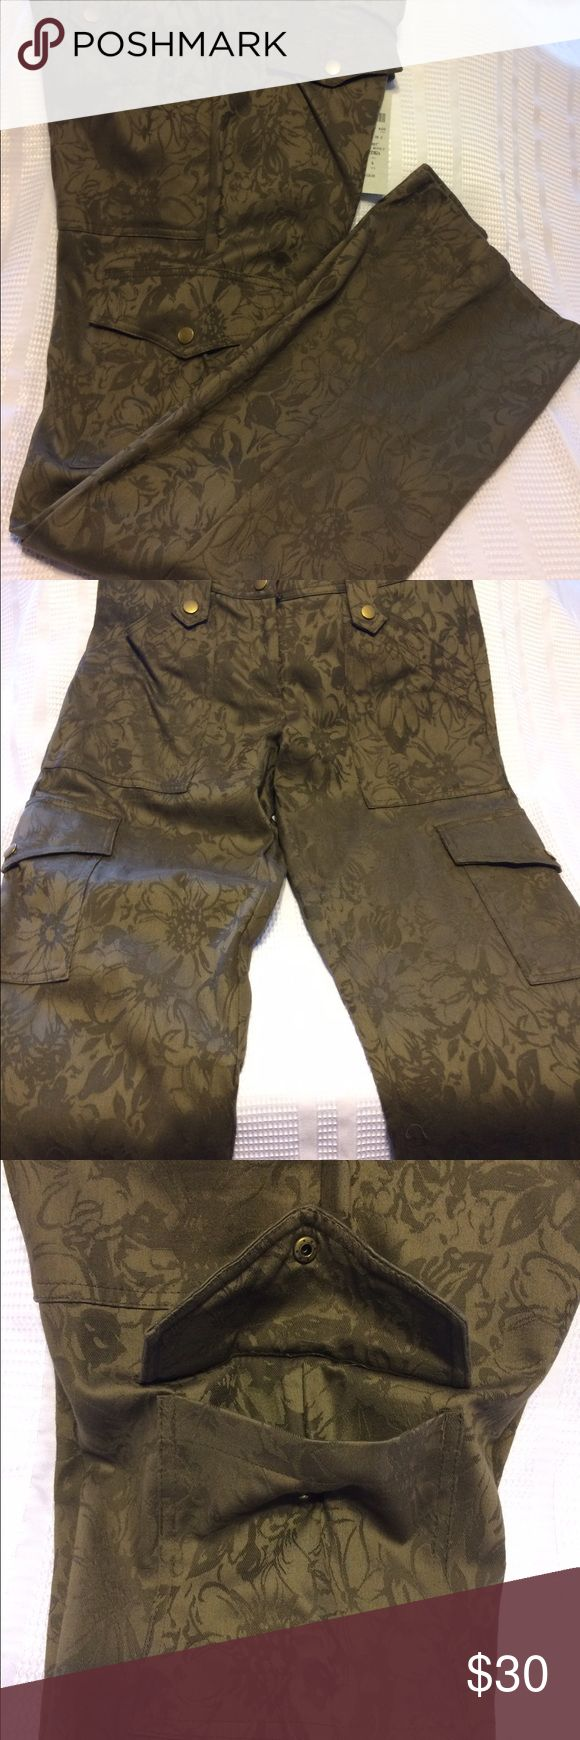 Caché floral print pants size - 4 Caché floral print military green pants with 4 functional pockets 2 up front and 2 down the legs it looks like 2 in the back but they are just facsimiles, there are belt loops with brass embellishments attaching them to the pants, in absolutely stunning condition these can be dressed up or down the choice is yours new with tags. CACHÉ Pants